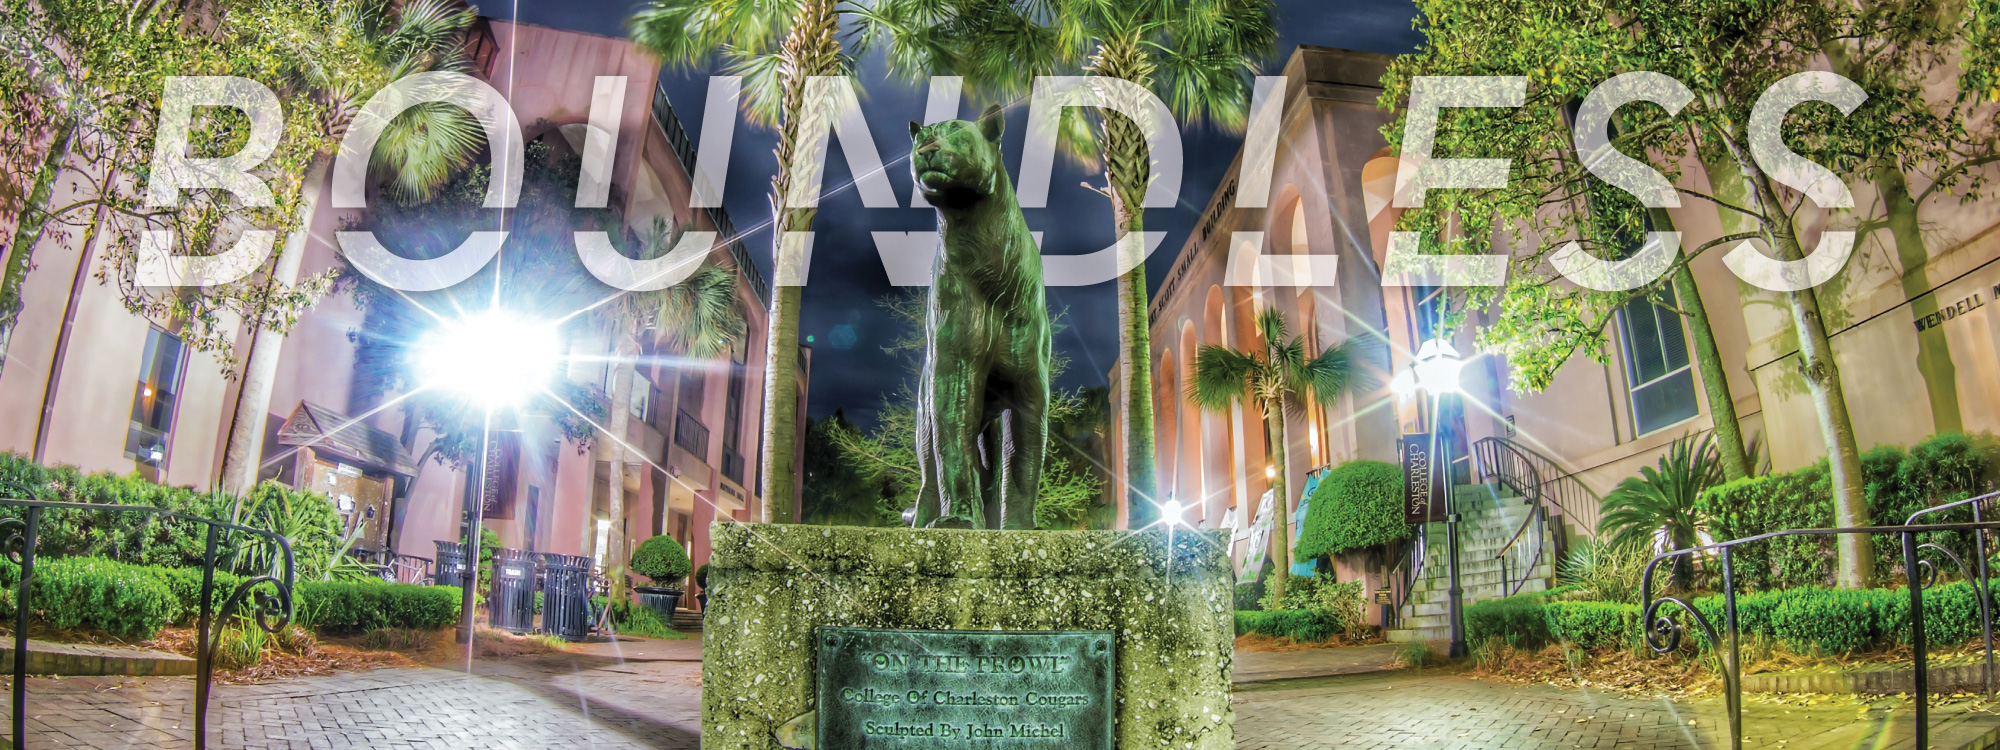 The Cougar Statue in Cougar Mall